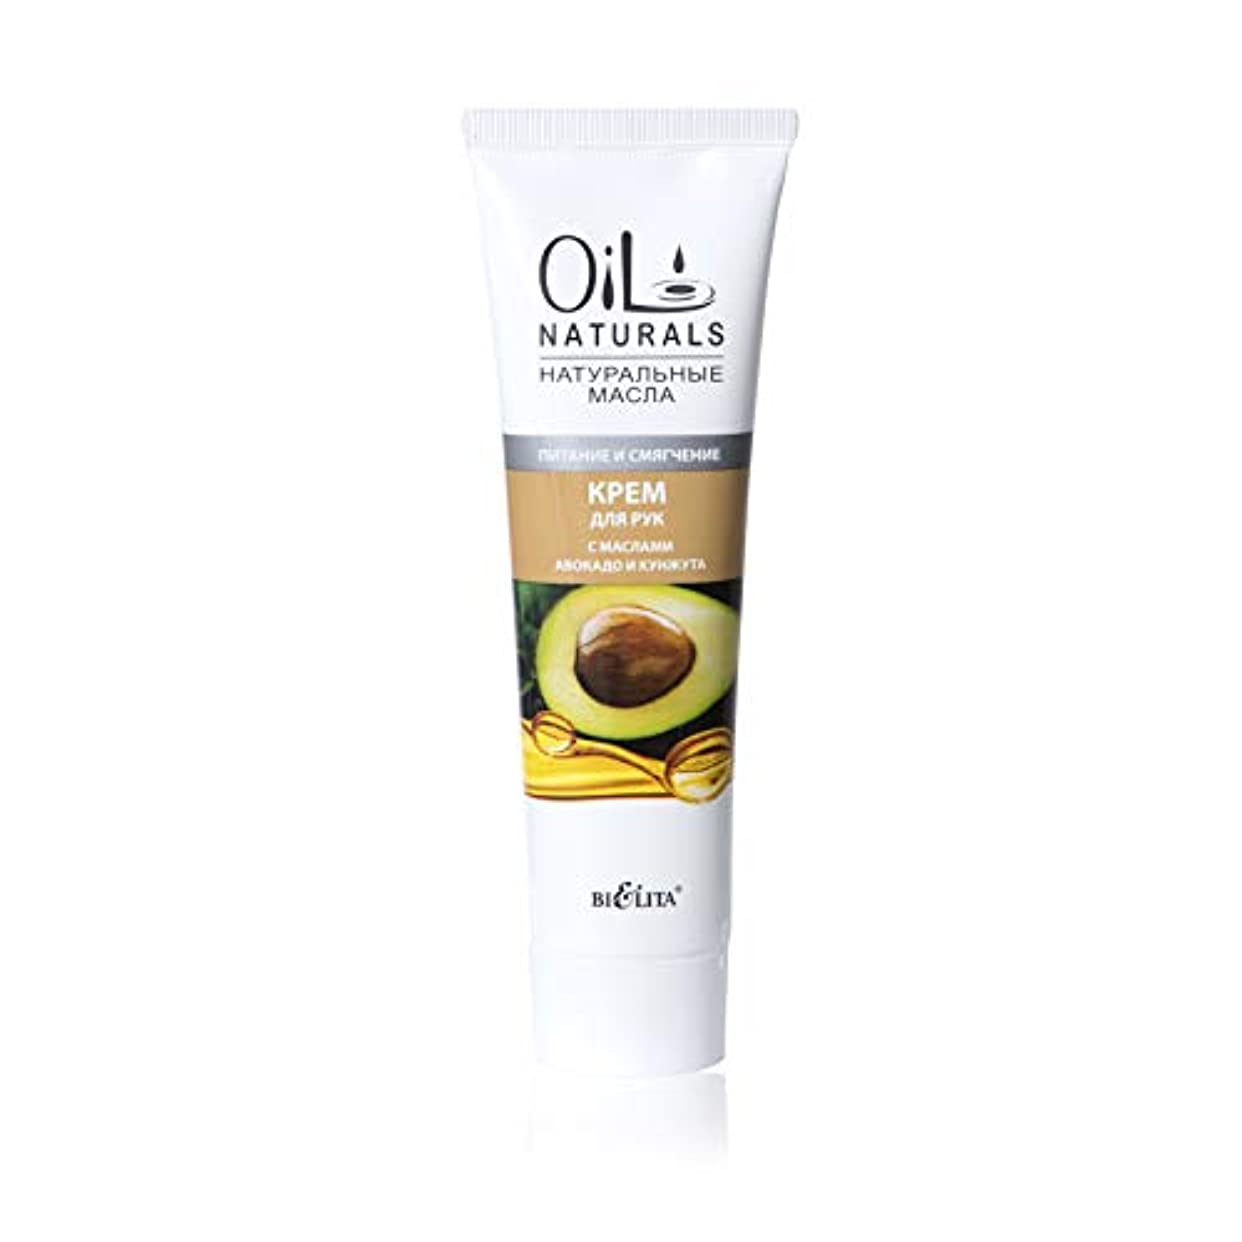 フォアタイプ著者検体Bielita & Vitex Oil Naturals Line | Nutrition & Softening Hand Cream, 100 ml | Avocado Oil, Silk Proteins, Sesame...